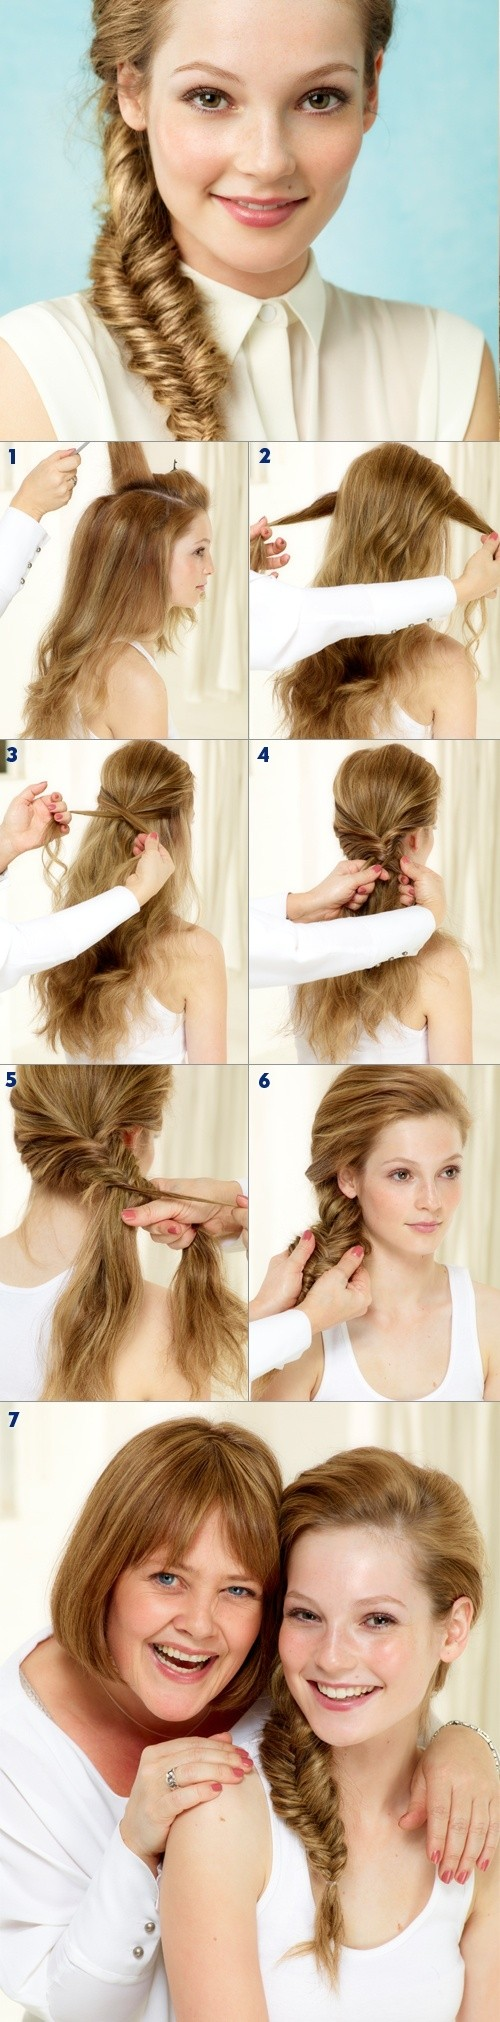 Side fishtail braid hairstyle tutorial